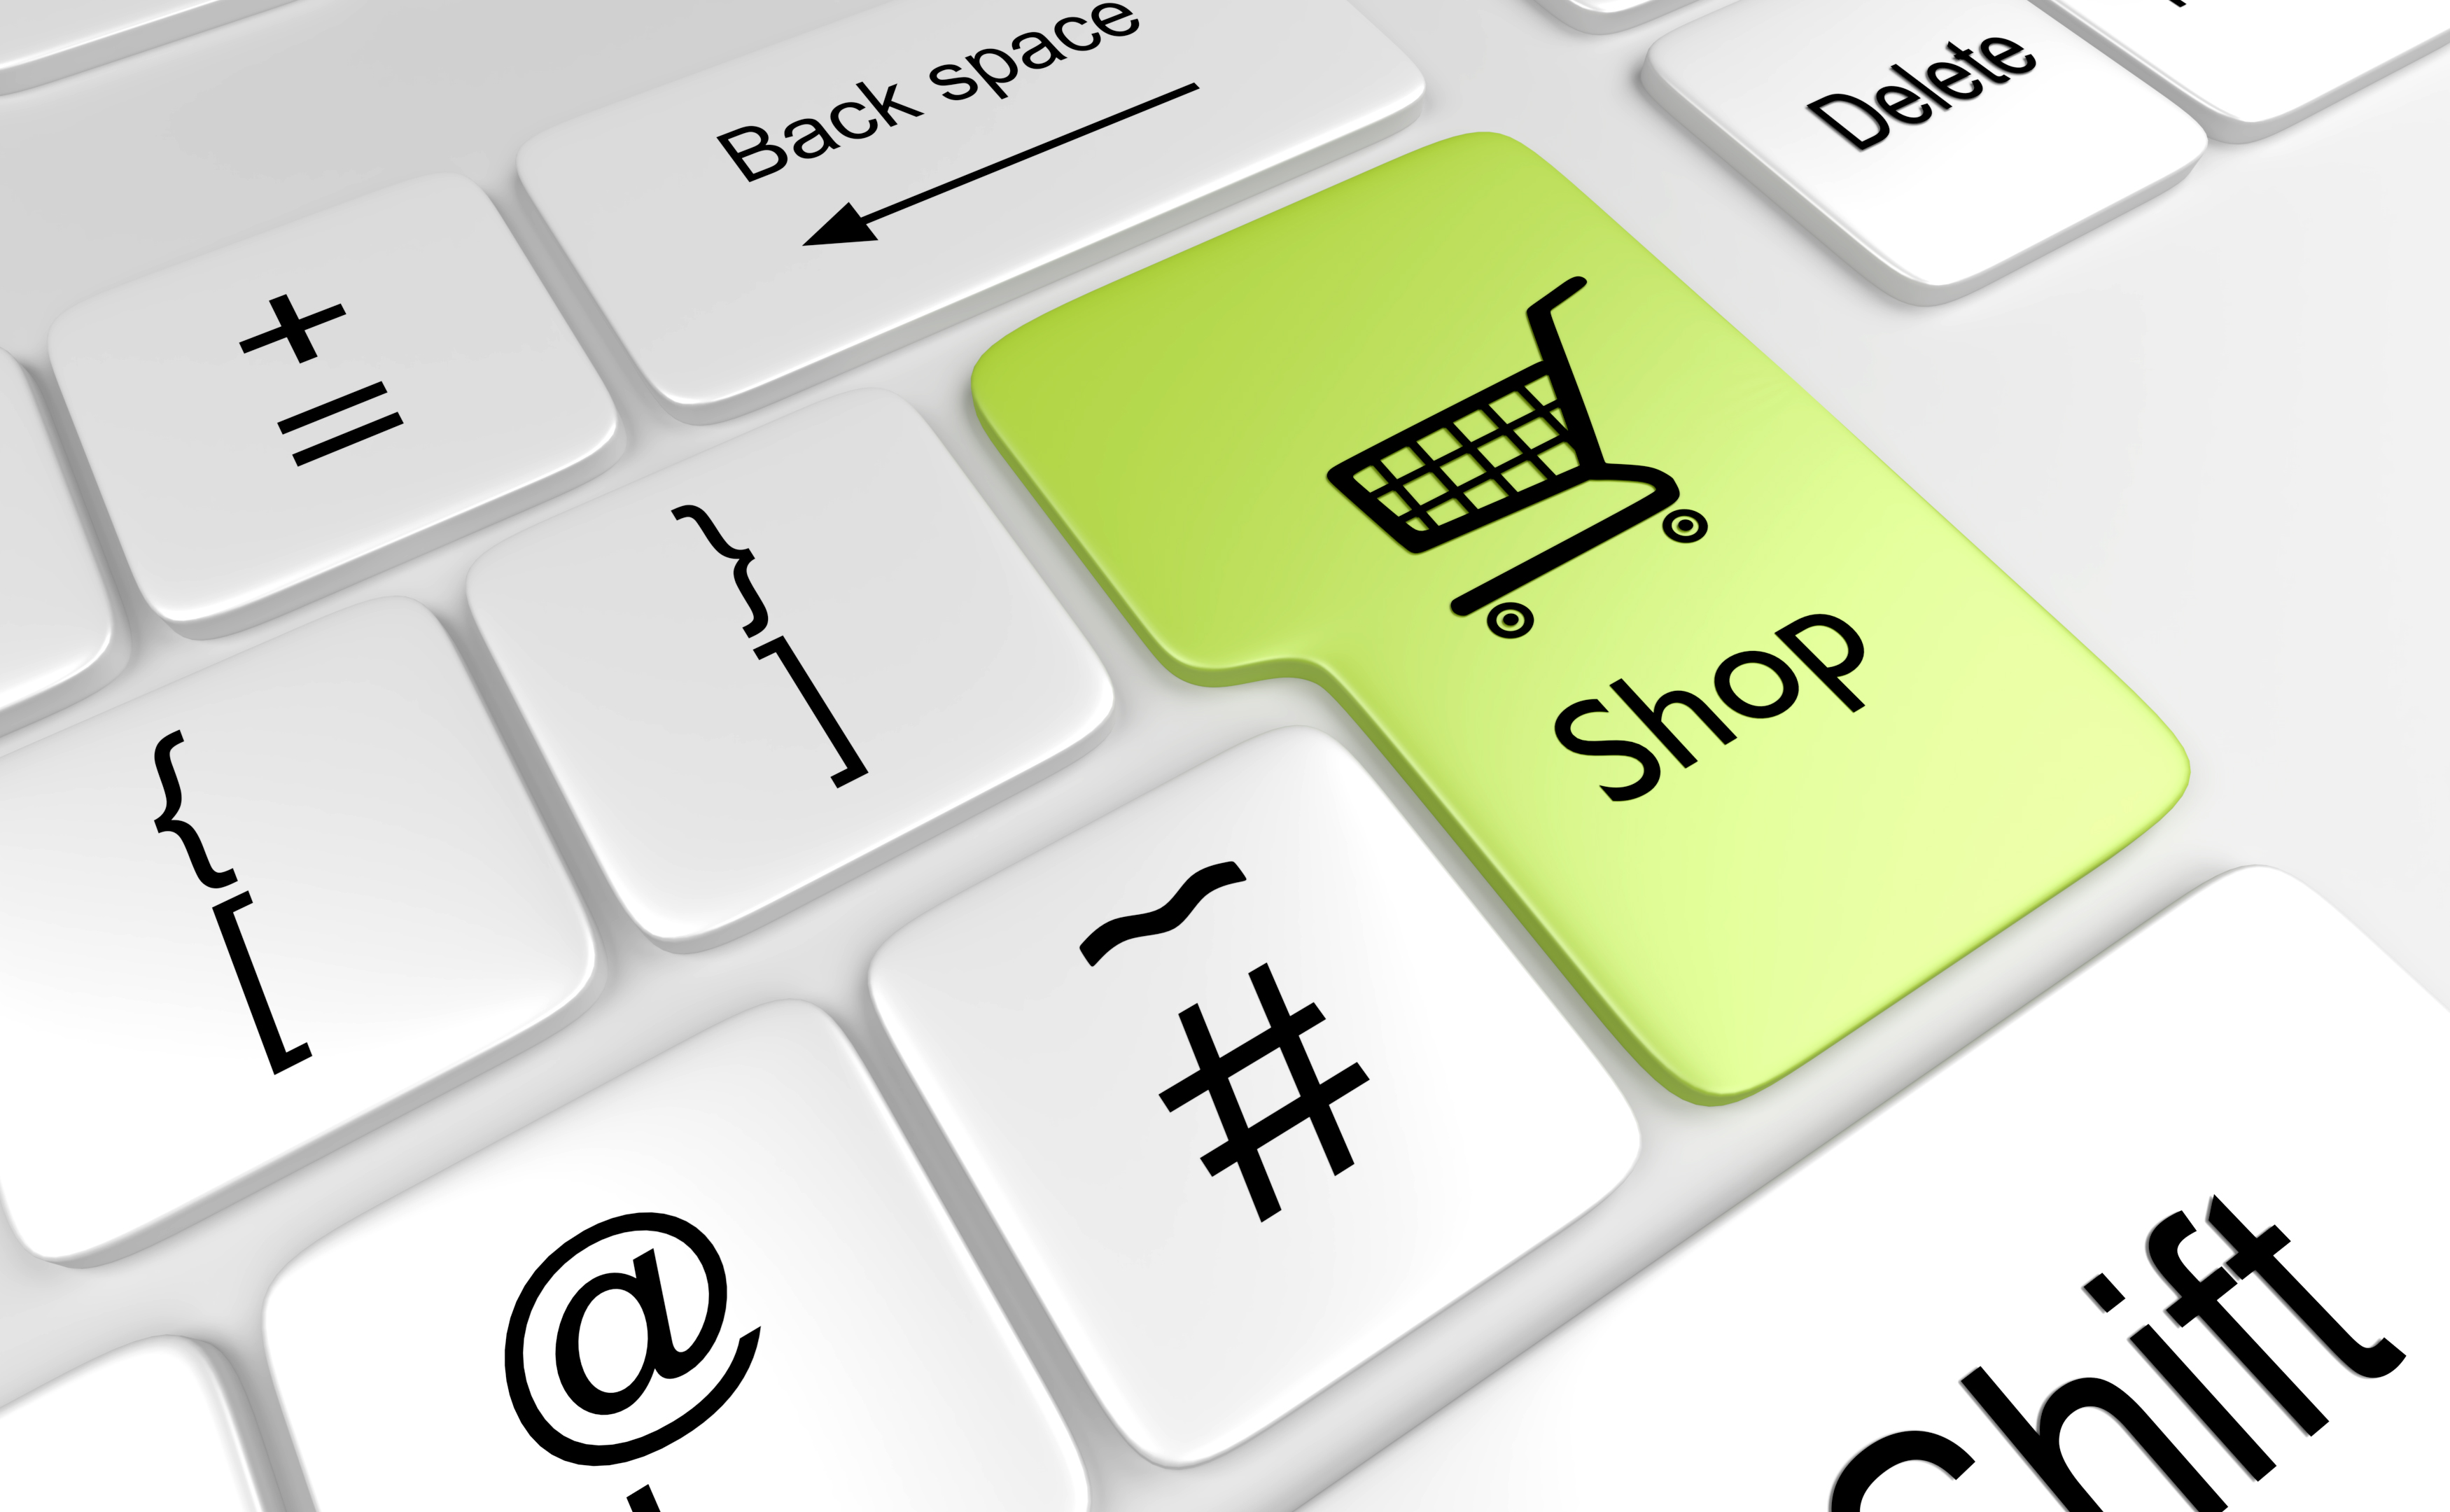 online-shopping-computer-keyboard-commerce-shopping-cart-shopping-computer-key-1445129-pxhere.com.jpg